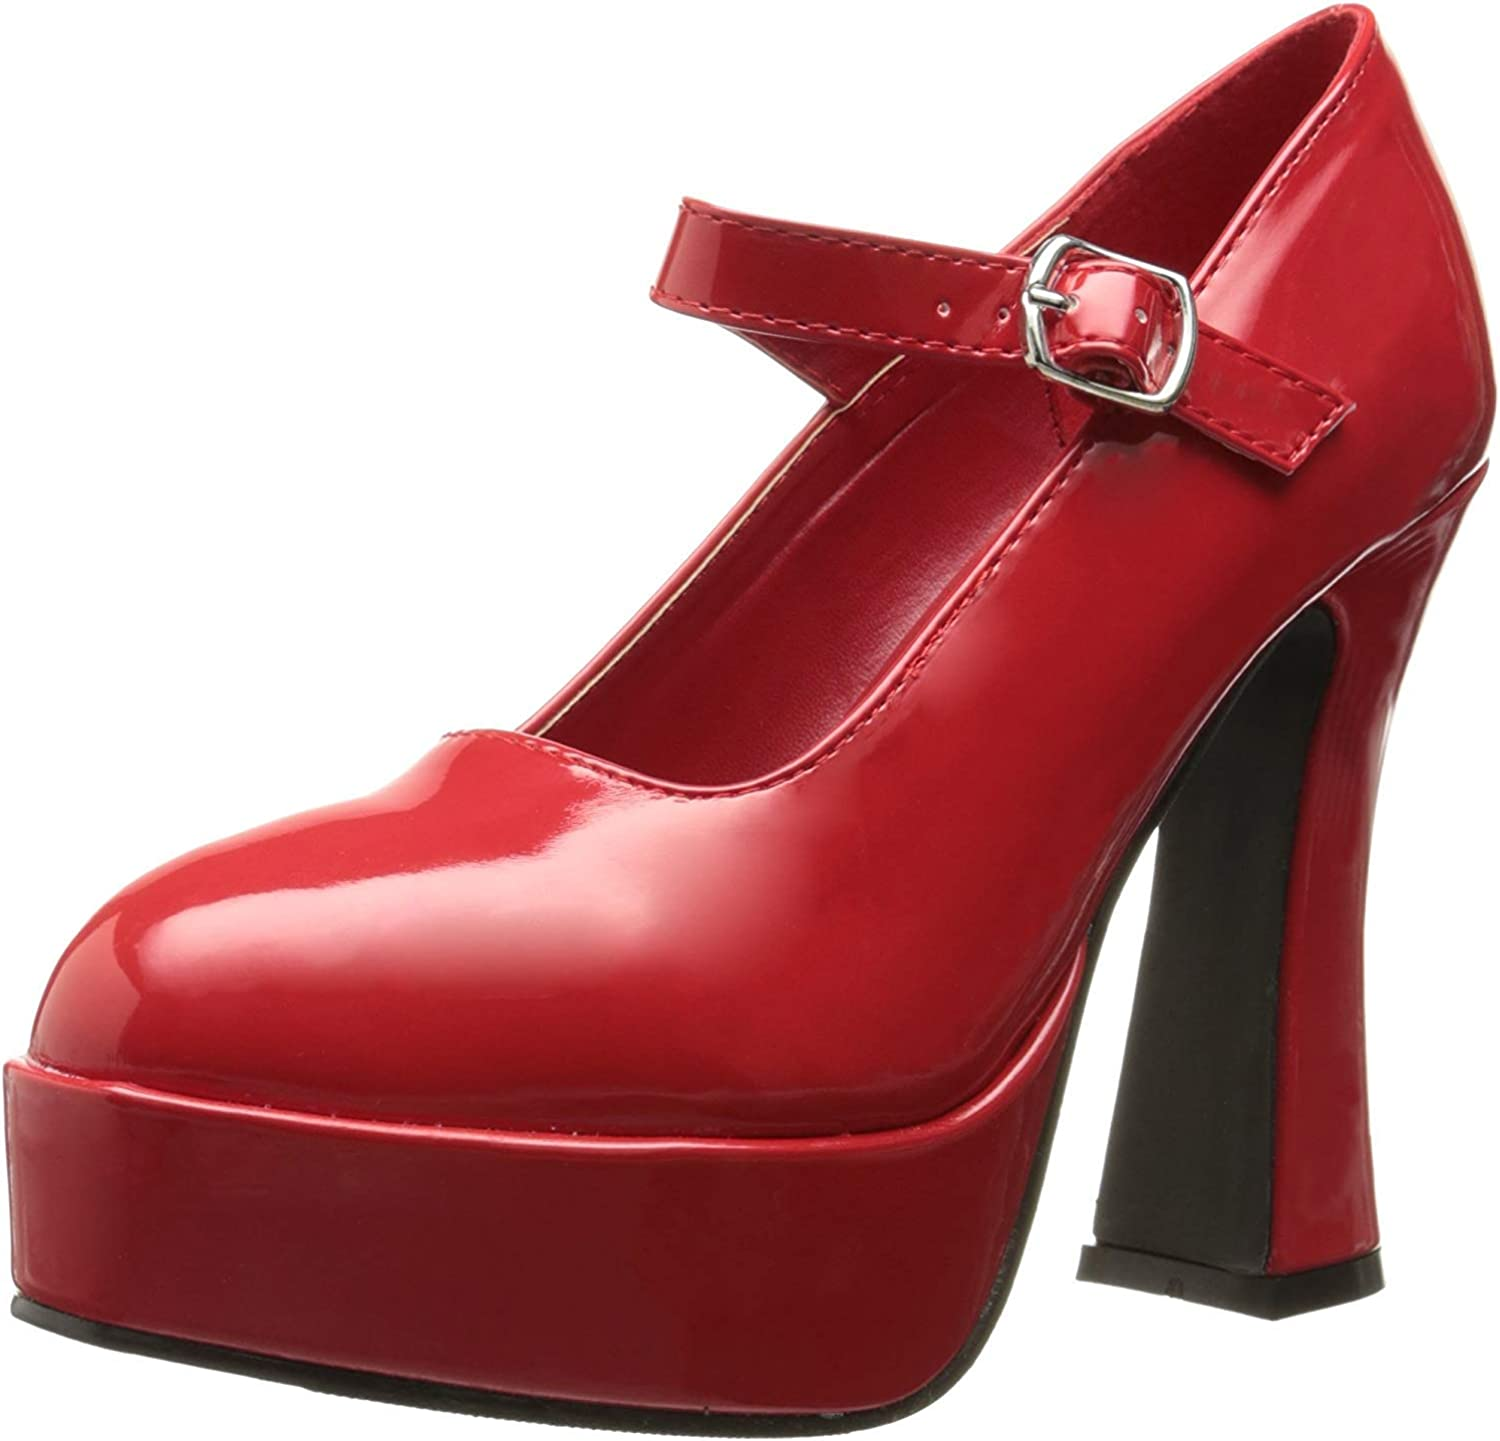 8M Red Patent Mary Jane Shoes Adult